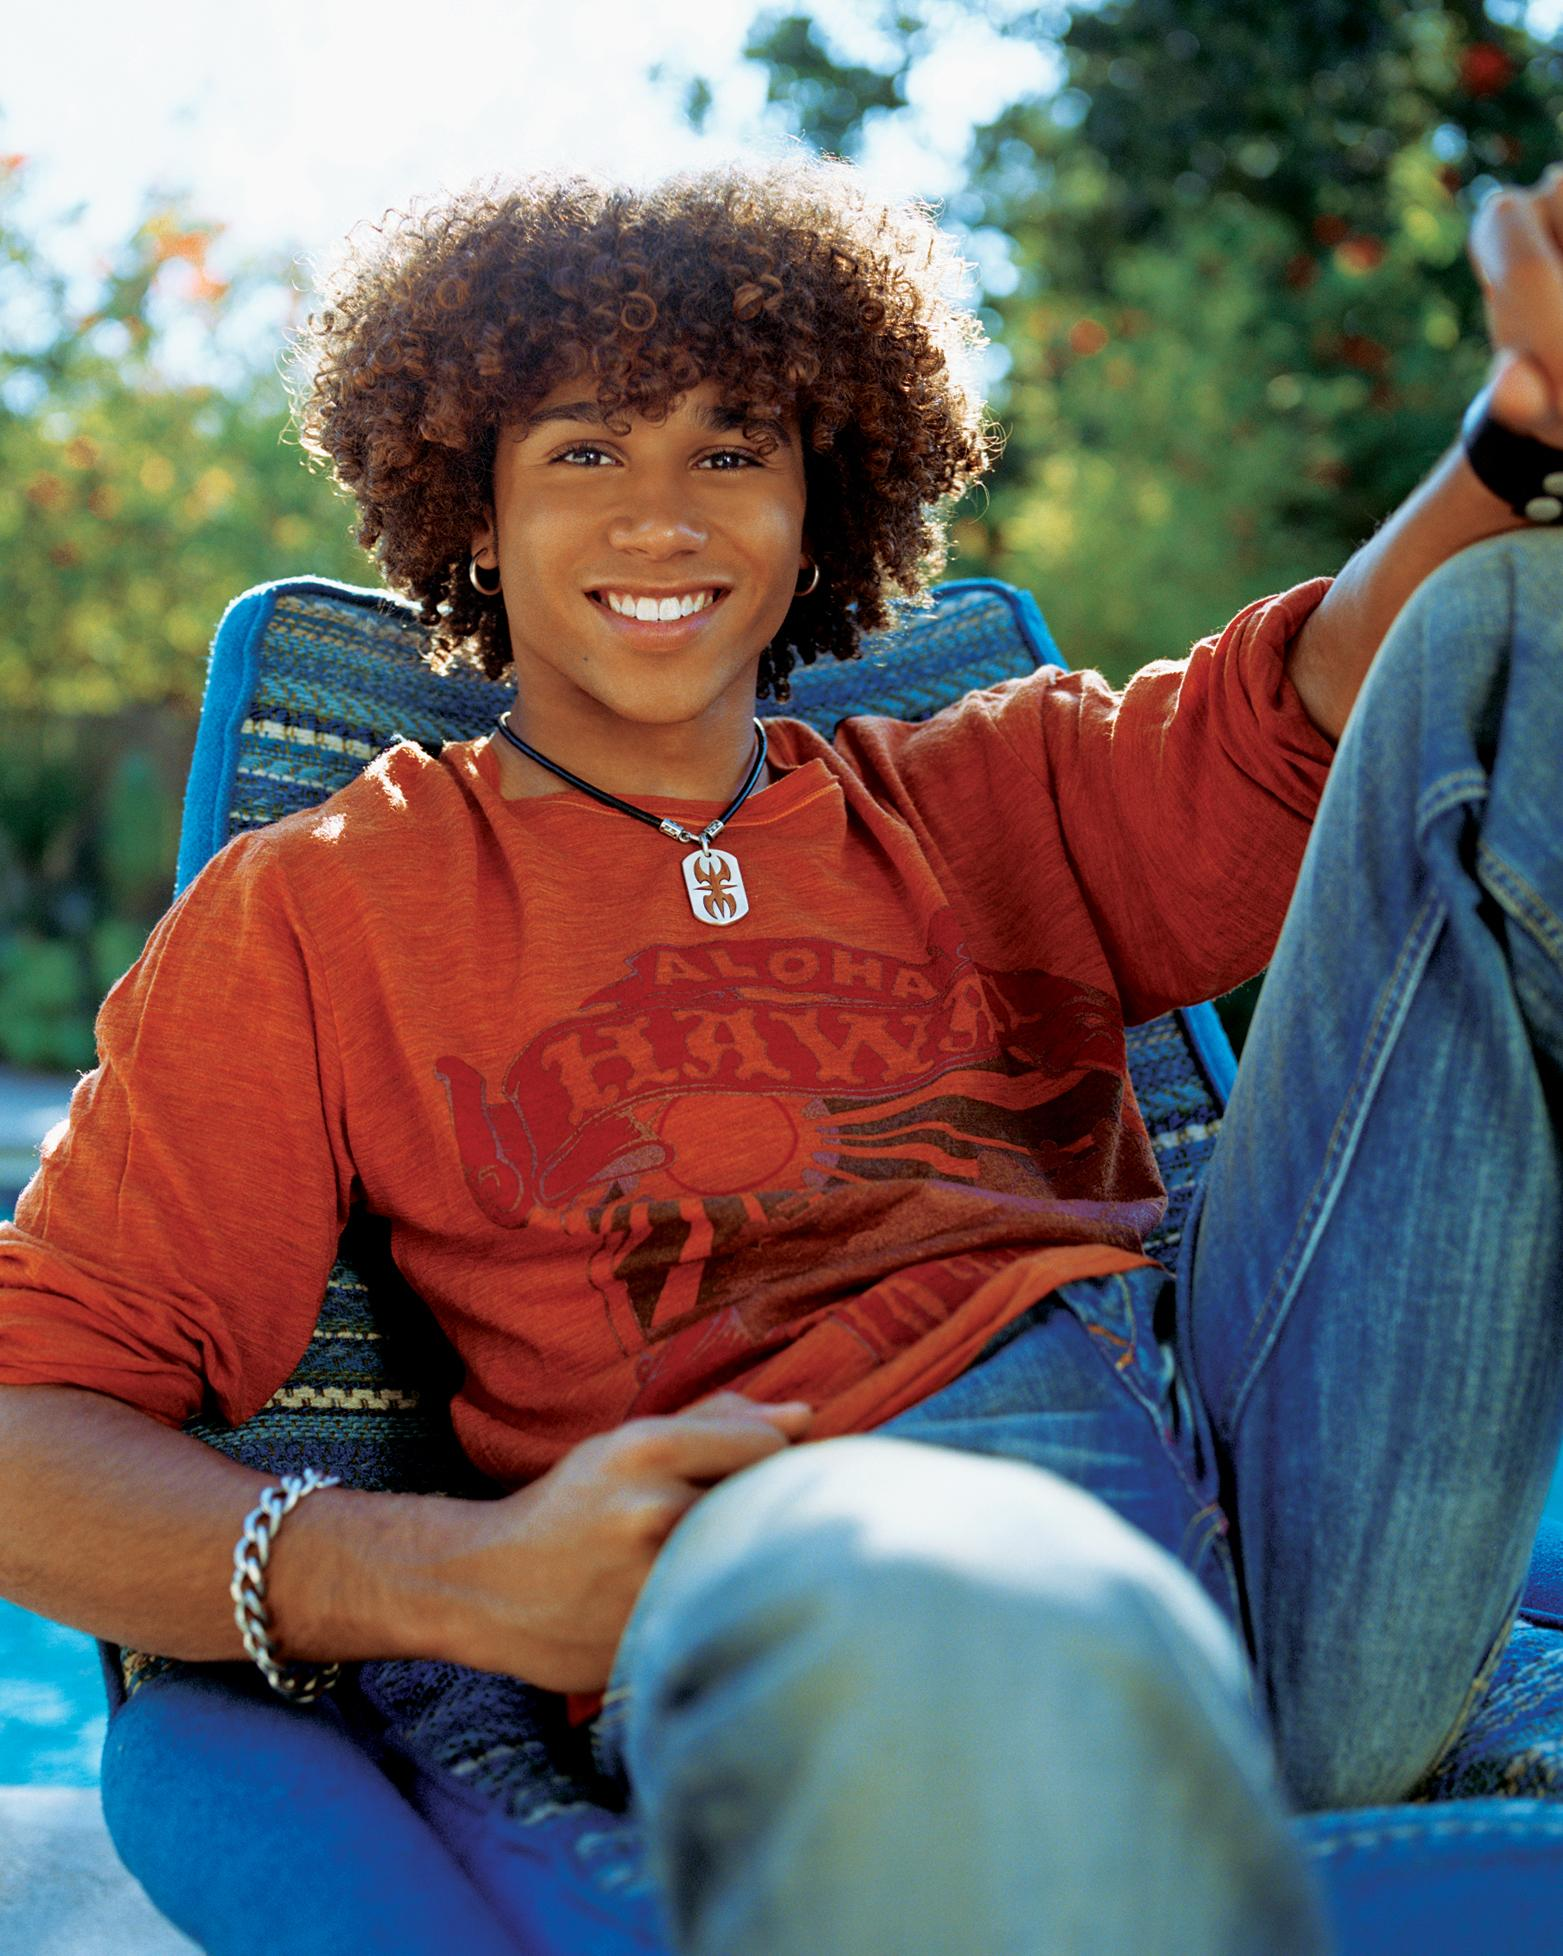 celebrity photos corbin bleu corbin bleu photo 10 1 vote Corbinbleu